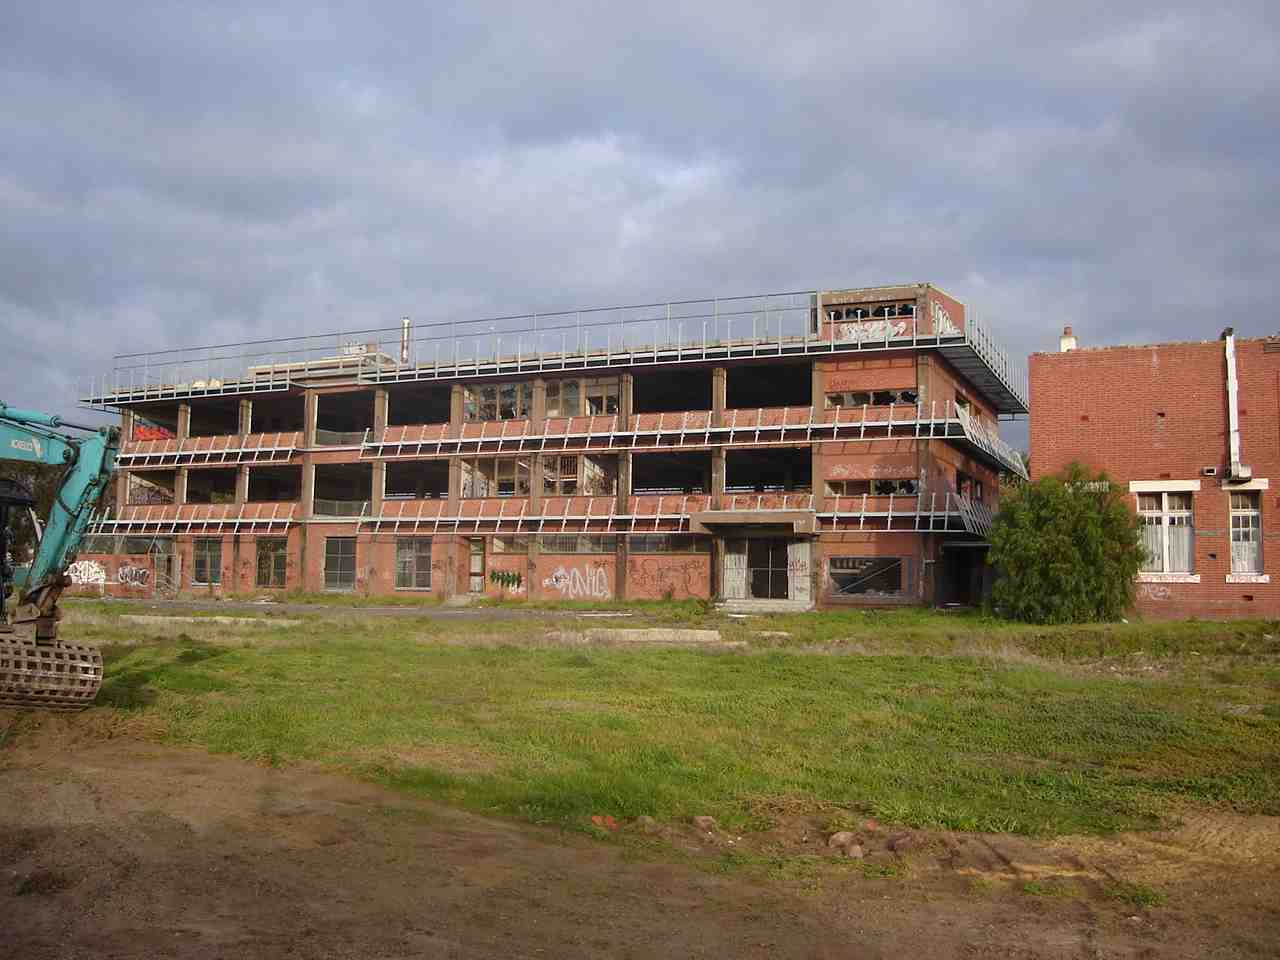 commercial_demolition_CoburgHighSchool_BackBuilding.jpg